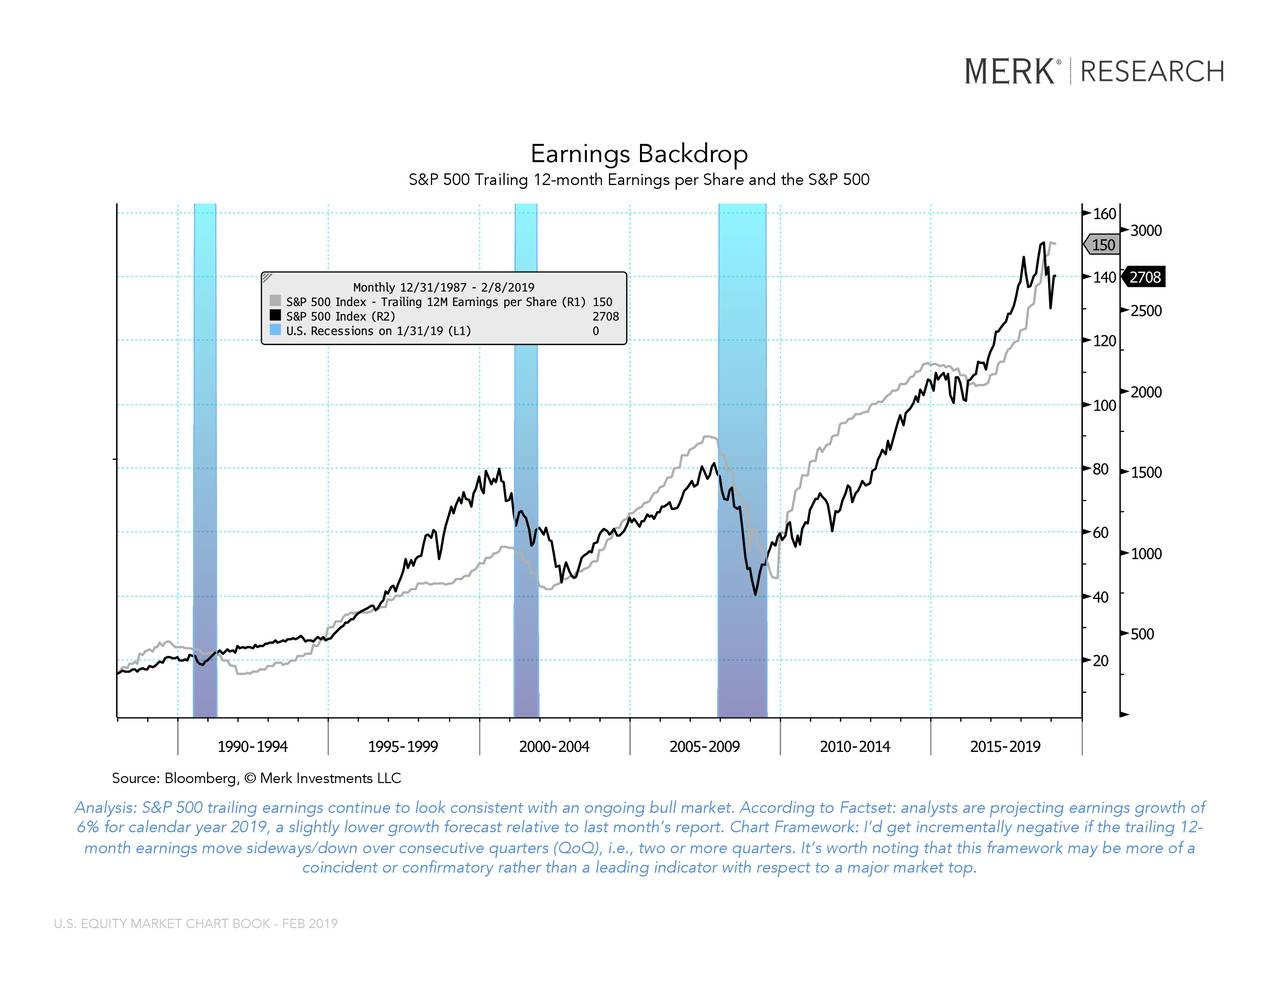 """SPX Index (S&P 500 Index) SPX Index (S&P 500 Index) USRINDEX Index (U.S. Recession Indicator... Earnings Backdrop S&P 500 Trailing 12-month Earnings per Share and the S&P 500 This report may not be modified or altered in any way. The BLOOMBERG PROFESSIONAL service and BLOOMBERG Data are owned and distributed locally by Bloomberg Finance LP (""""BFLP"""") and its subsidiaries in all jurisdictions other than Argentina, Bermuda, China, India, Japan and Korea (the (""""BFLP Countries""""). BFLP is a wholly-owned subsidiary of Bloomberg LP (""""BLP""""). BLP provides BFLP with all the global marketing and operational support and service for the Services and distributes the Services either directly or through a non-BFLP subsidiary in the BLP Countries. BFLP, BLP and their affiliates Analysis: S&P 500 trailing earnings continue to look consistent with an ongoing bull market. According to Factset: analysts are projecting earnings growth of 6% for calendar year 2019, a slightly lower growth forecast relative to last month's report. Chart Framework: I'd get incrementally negative if the trailing 12- Bloomberg ® 02/08/2019 17:11:17 2 month earnings move sideways/down over consecutive quarters ( QoQ), i.e., two or more quarters. It's worth noting that this framework may be more of a coincident or confirmatory rather than a leading indicator with respect to a major market top. U.S. EQUITY MARKET CHART BOOK - FEB 2019"""